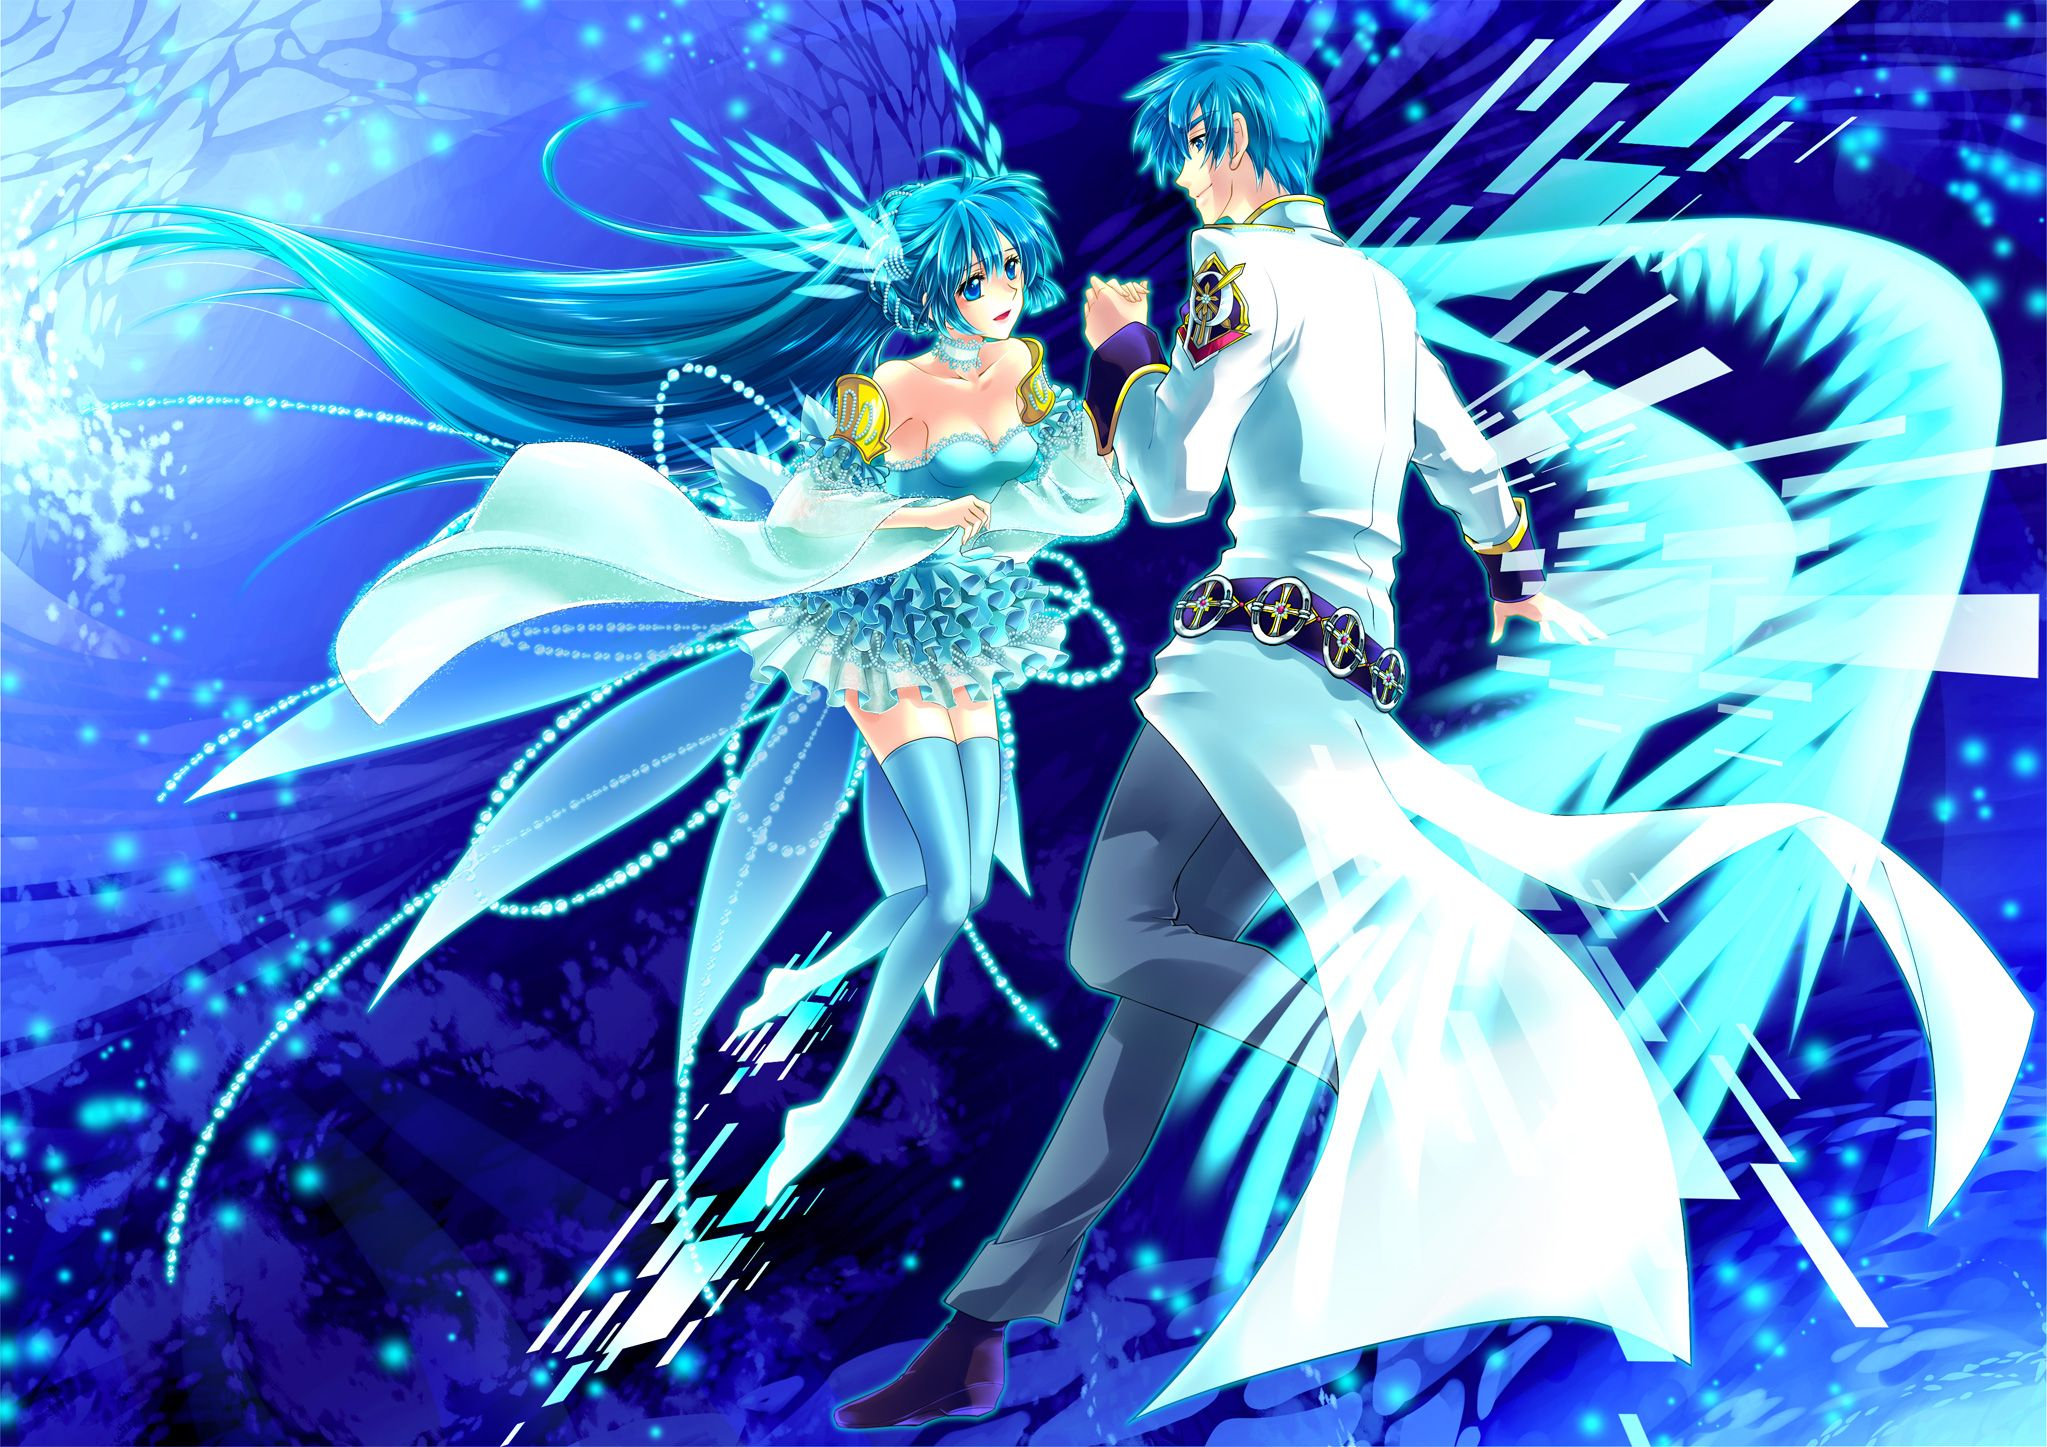 Free Dancing Anime Couple Digital Wallpaper & HD pictures